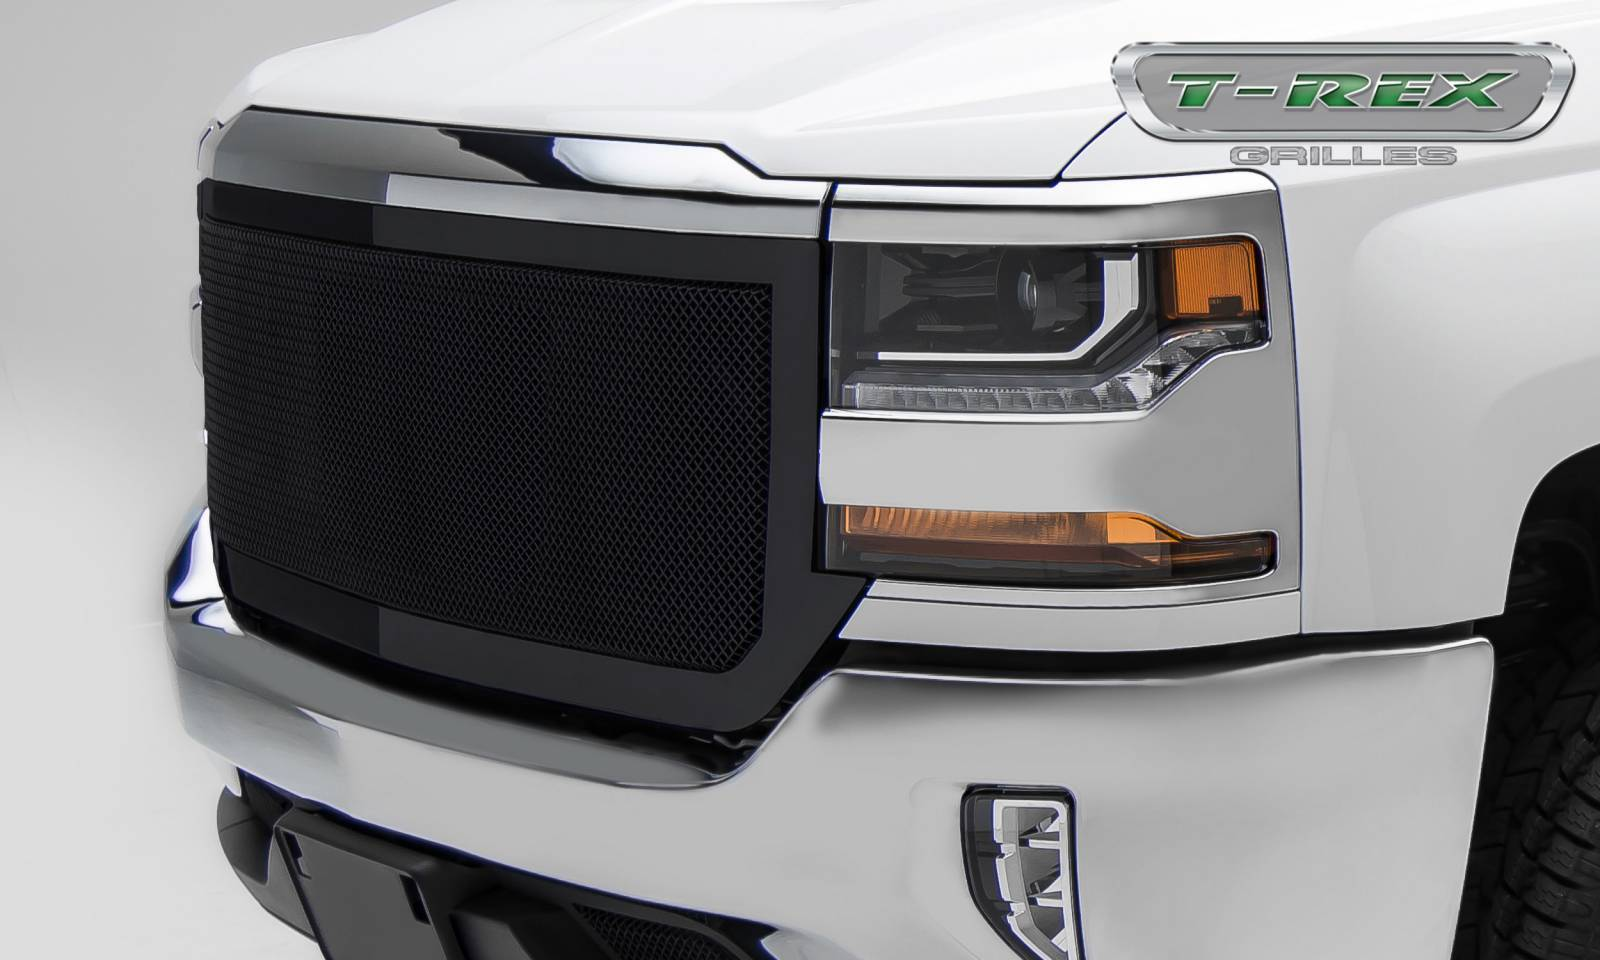 chevrolet silverado 1500 upper class mesh grille black powder Silverado Head Liner t rex grilles chevrolet silverado 1500 upper class mesh grille black powder coated